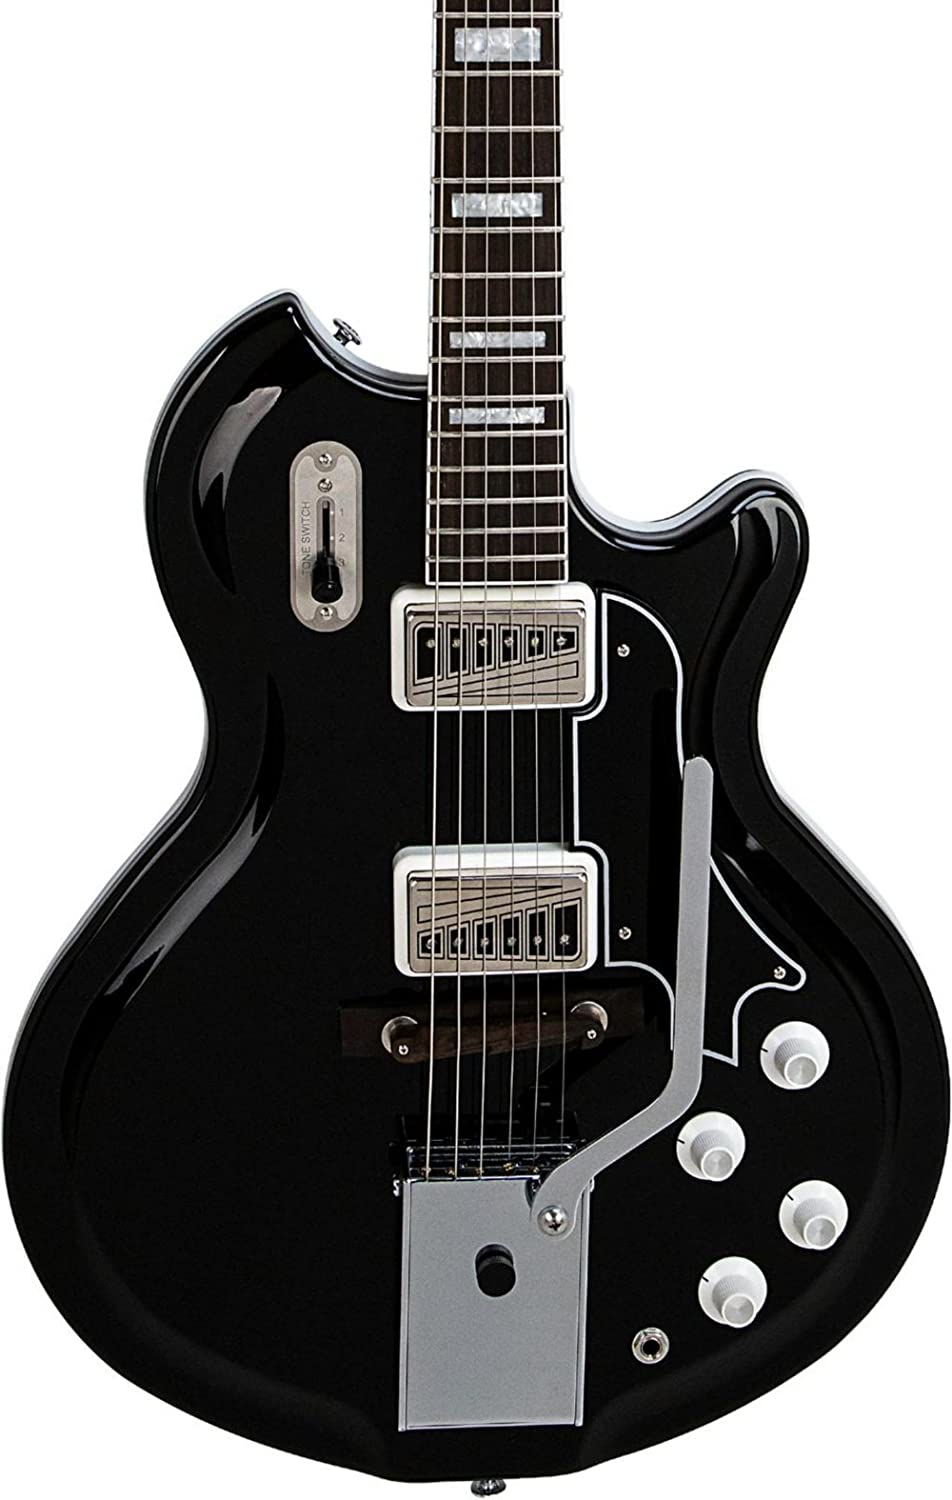 Supro Coronado II Vibrato Semi-Hollow guitarra eléctrica: Amazon.es ...